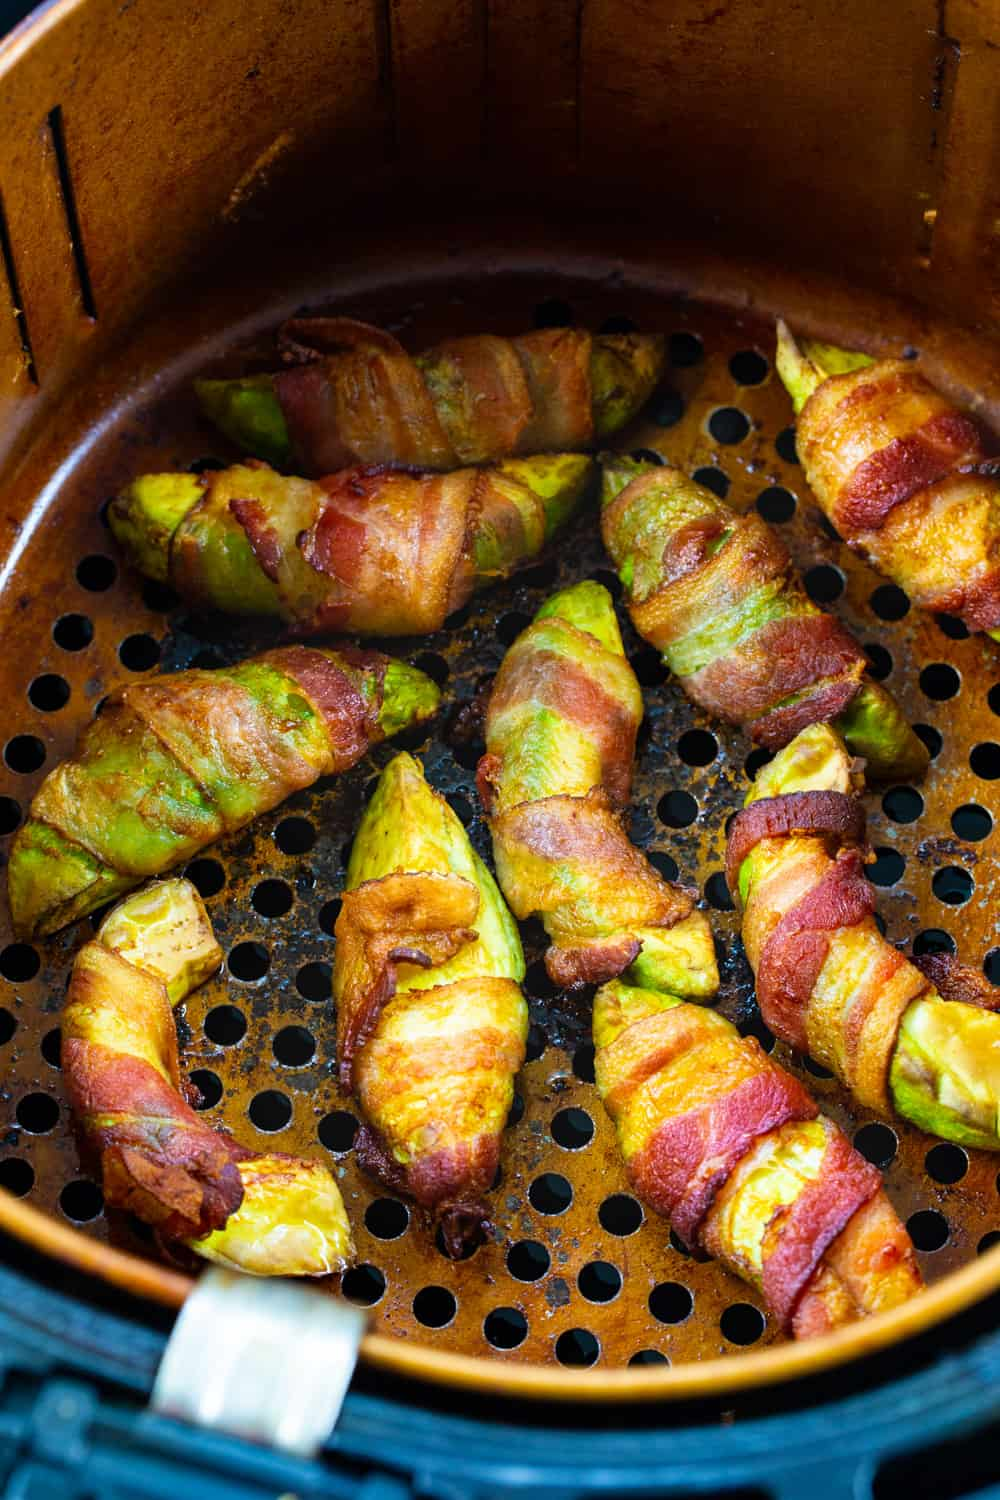 Bacon Wrapped Avocado Slices in air fryer basket.